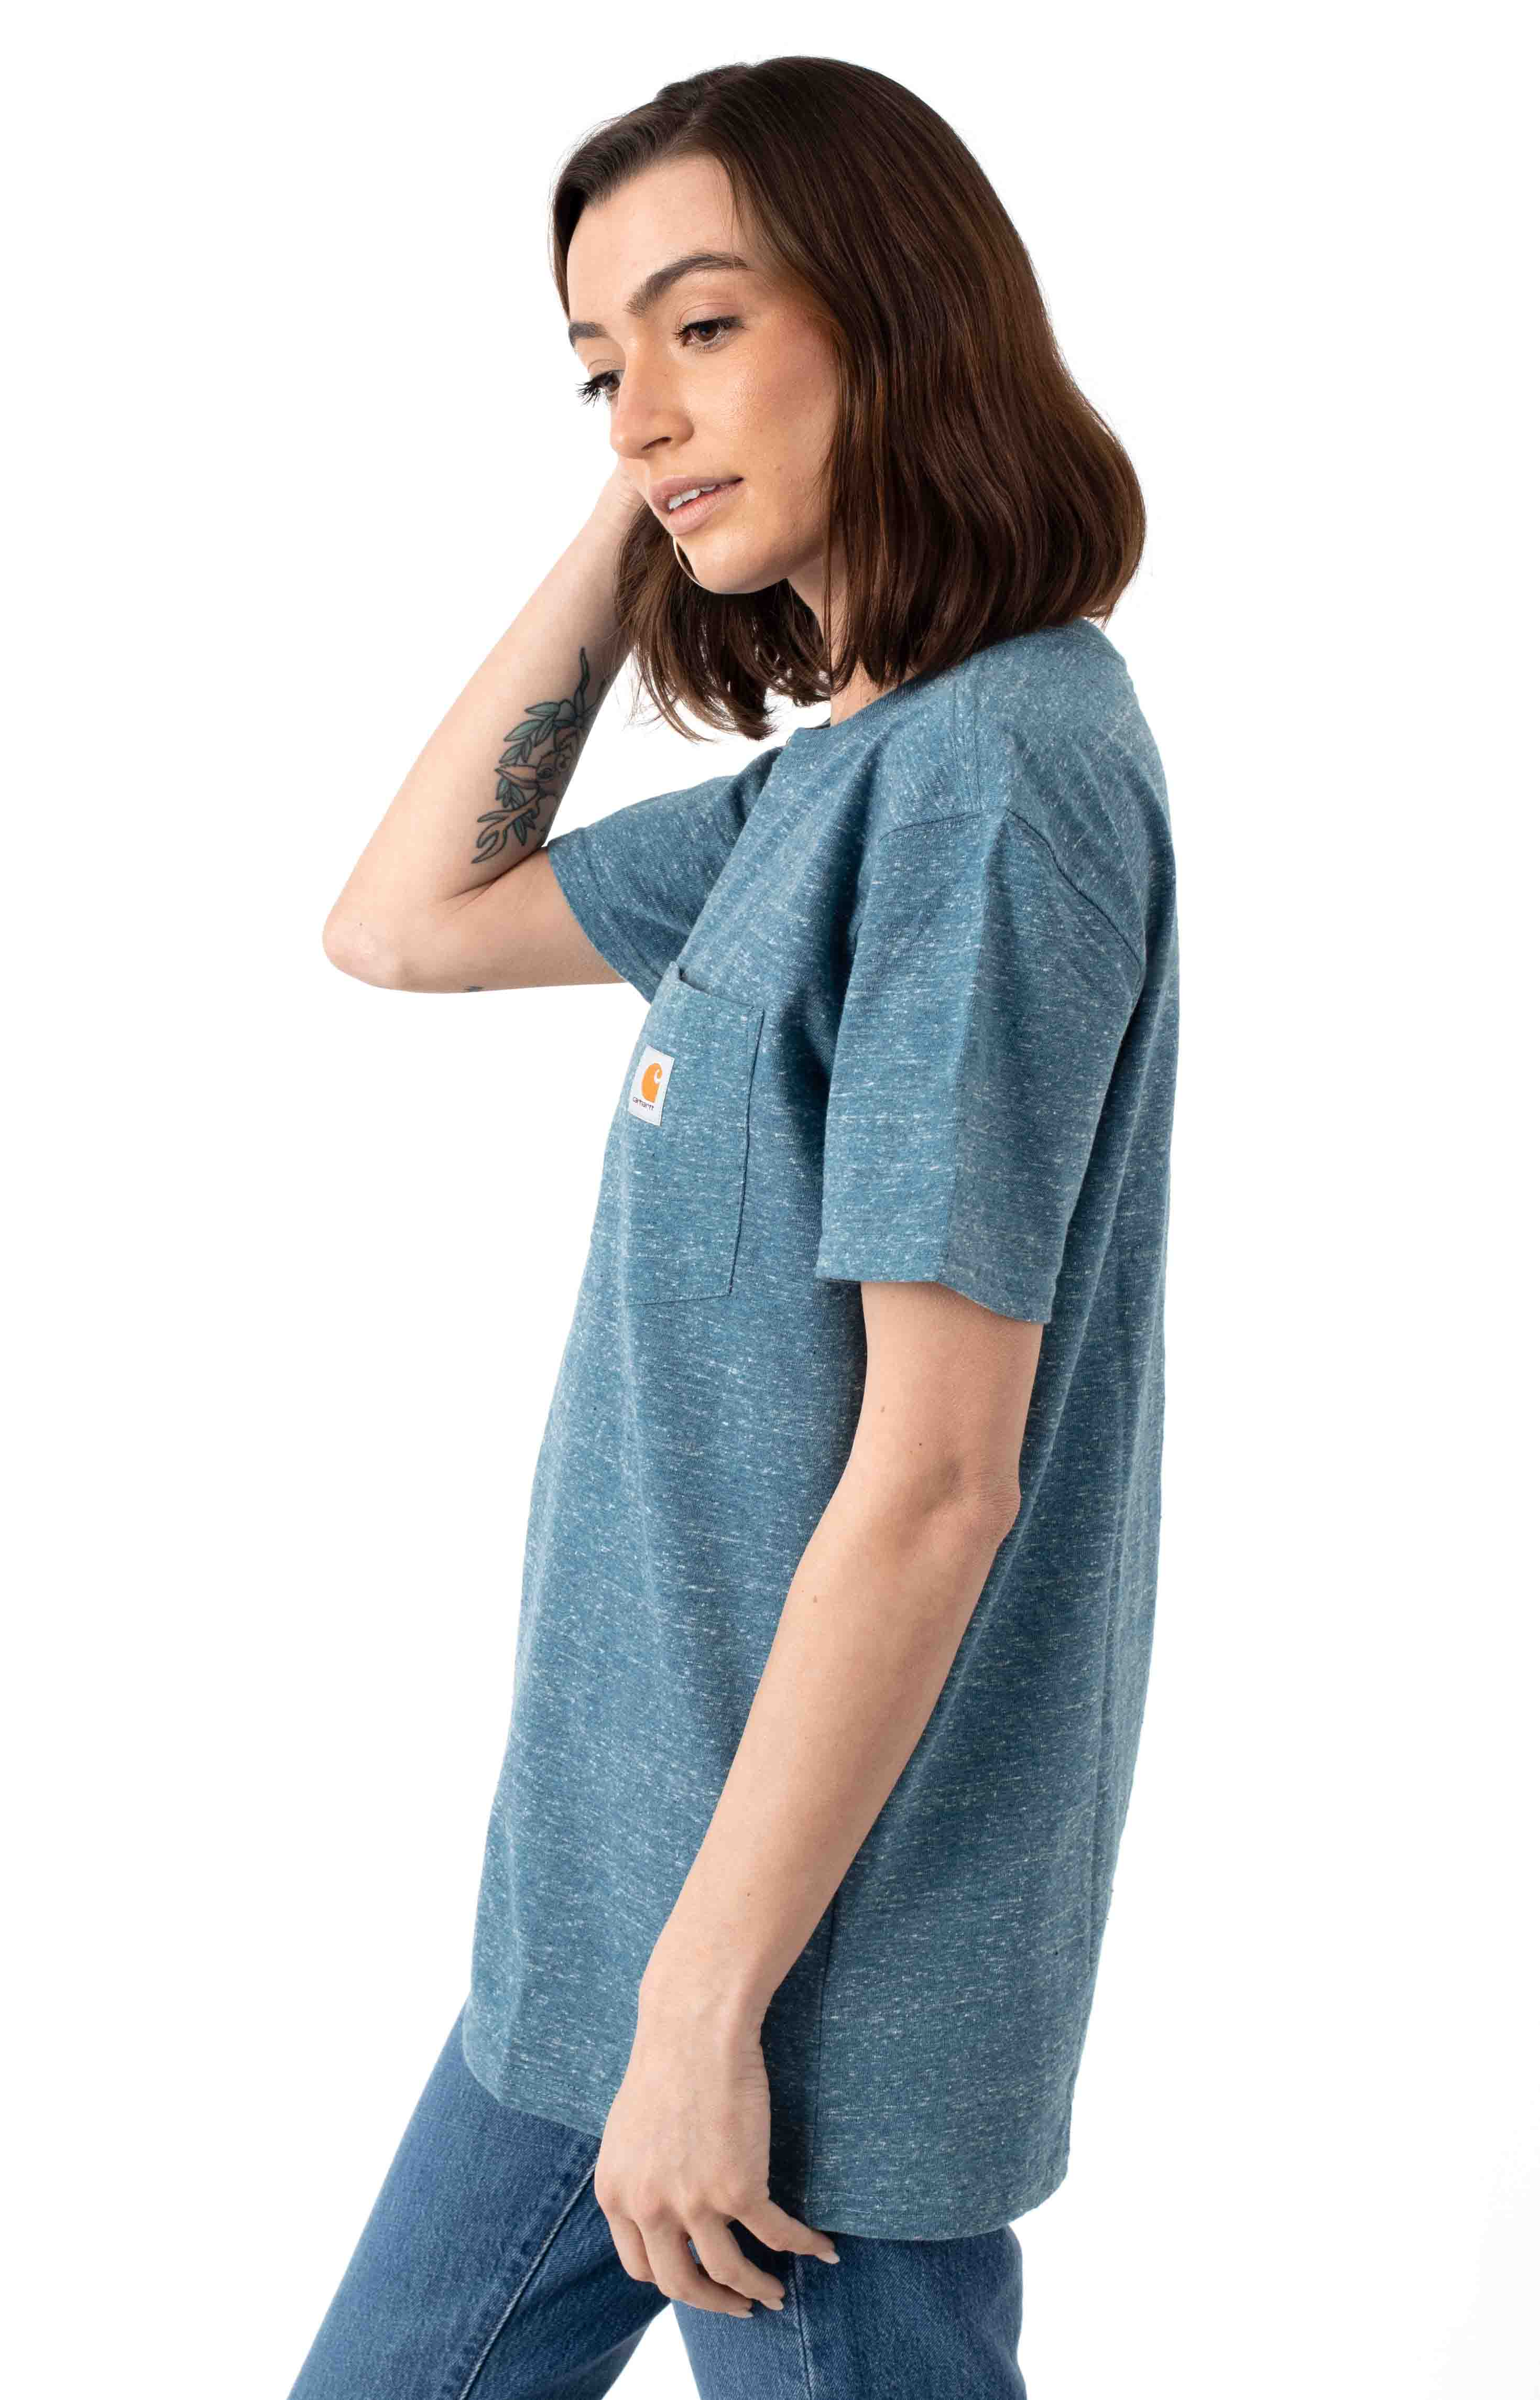 (103067) WK87 Workwear Pocket T-Shirt - Ocean Blue Snow Heather  2